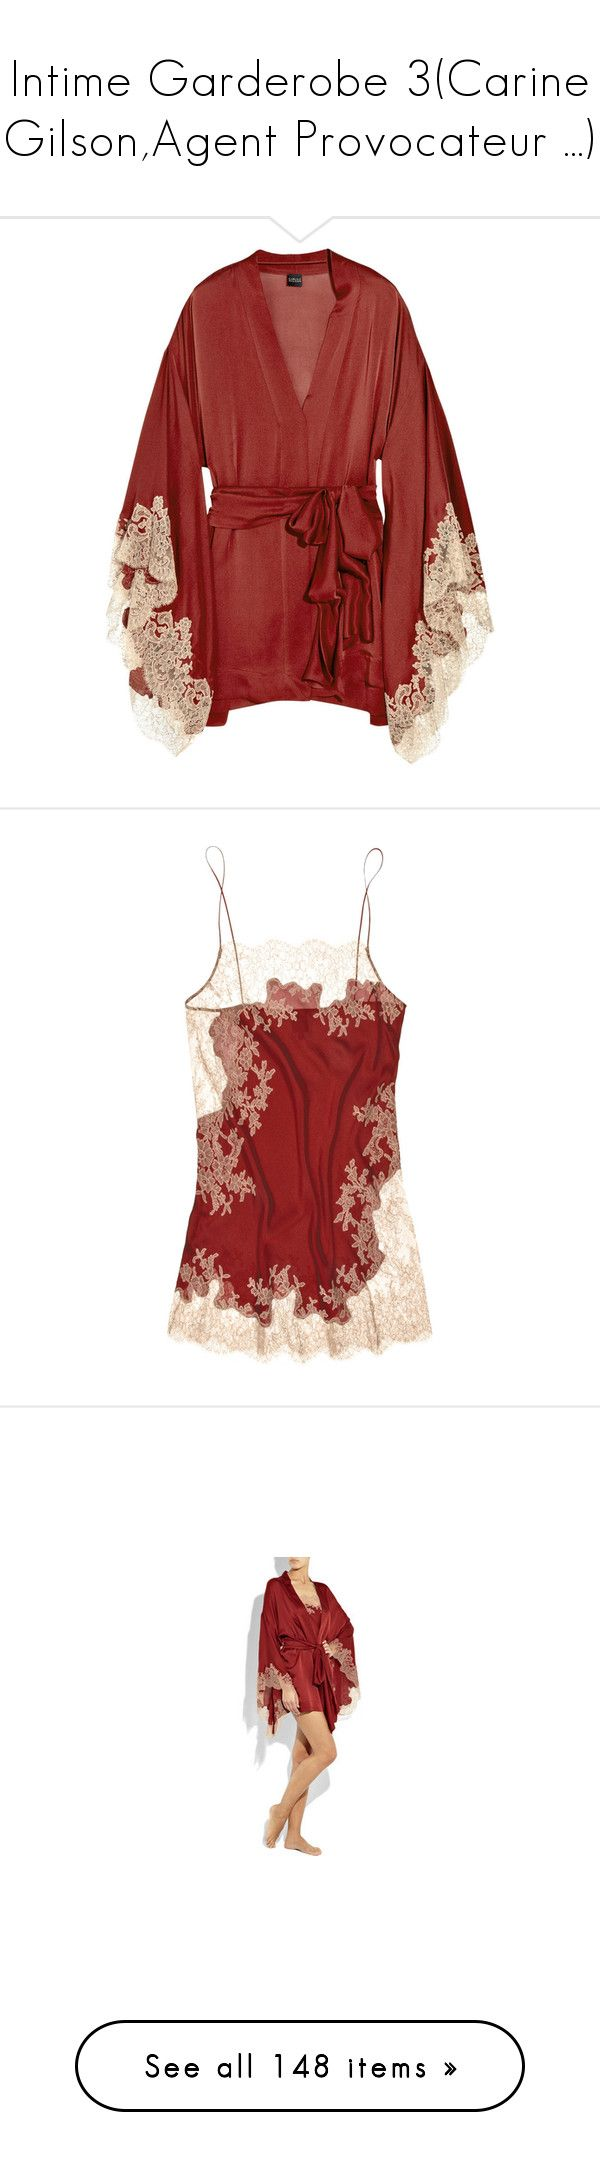 """""""Intime Garderobe 3(Carine Gilson,Agent Provocateur ...)"""" by olivia-richter ❤ liked on Polyvore featuring intimates, robes, lingerie, tops, underwear, dresses, women, dressing gown, kimono robe and silk satin robe"""